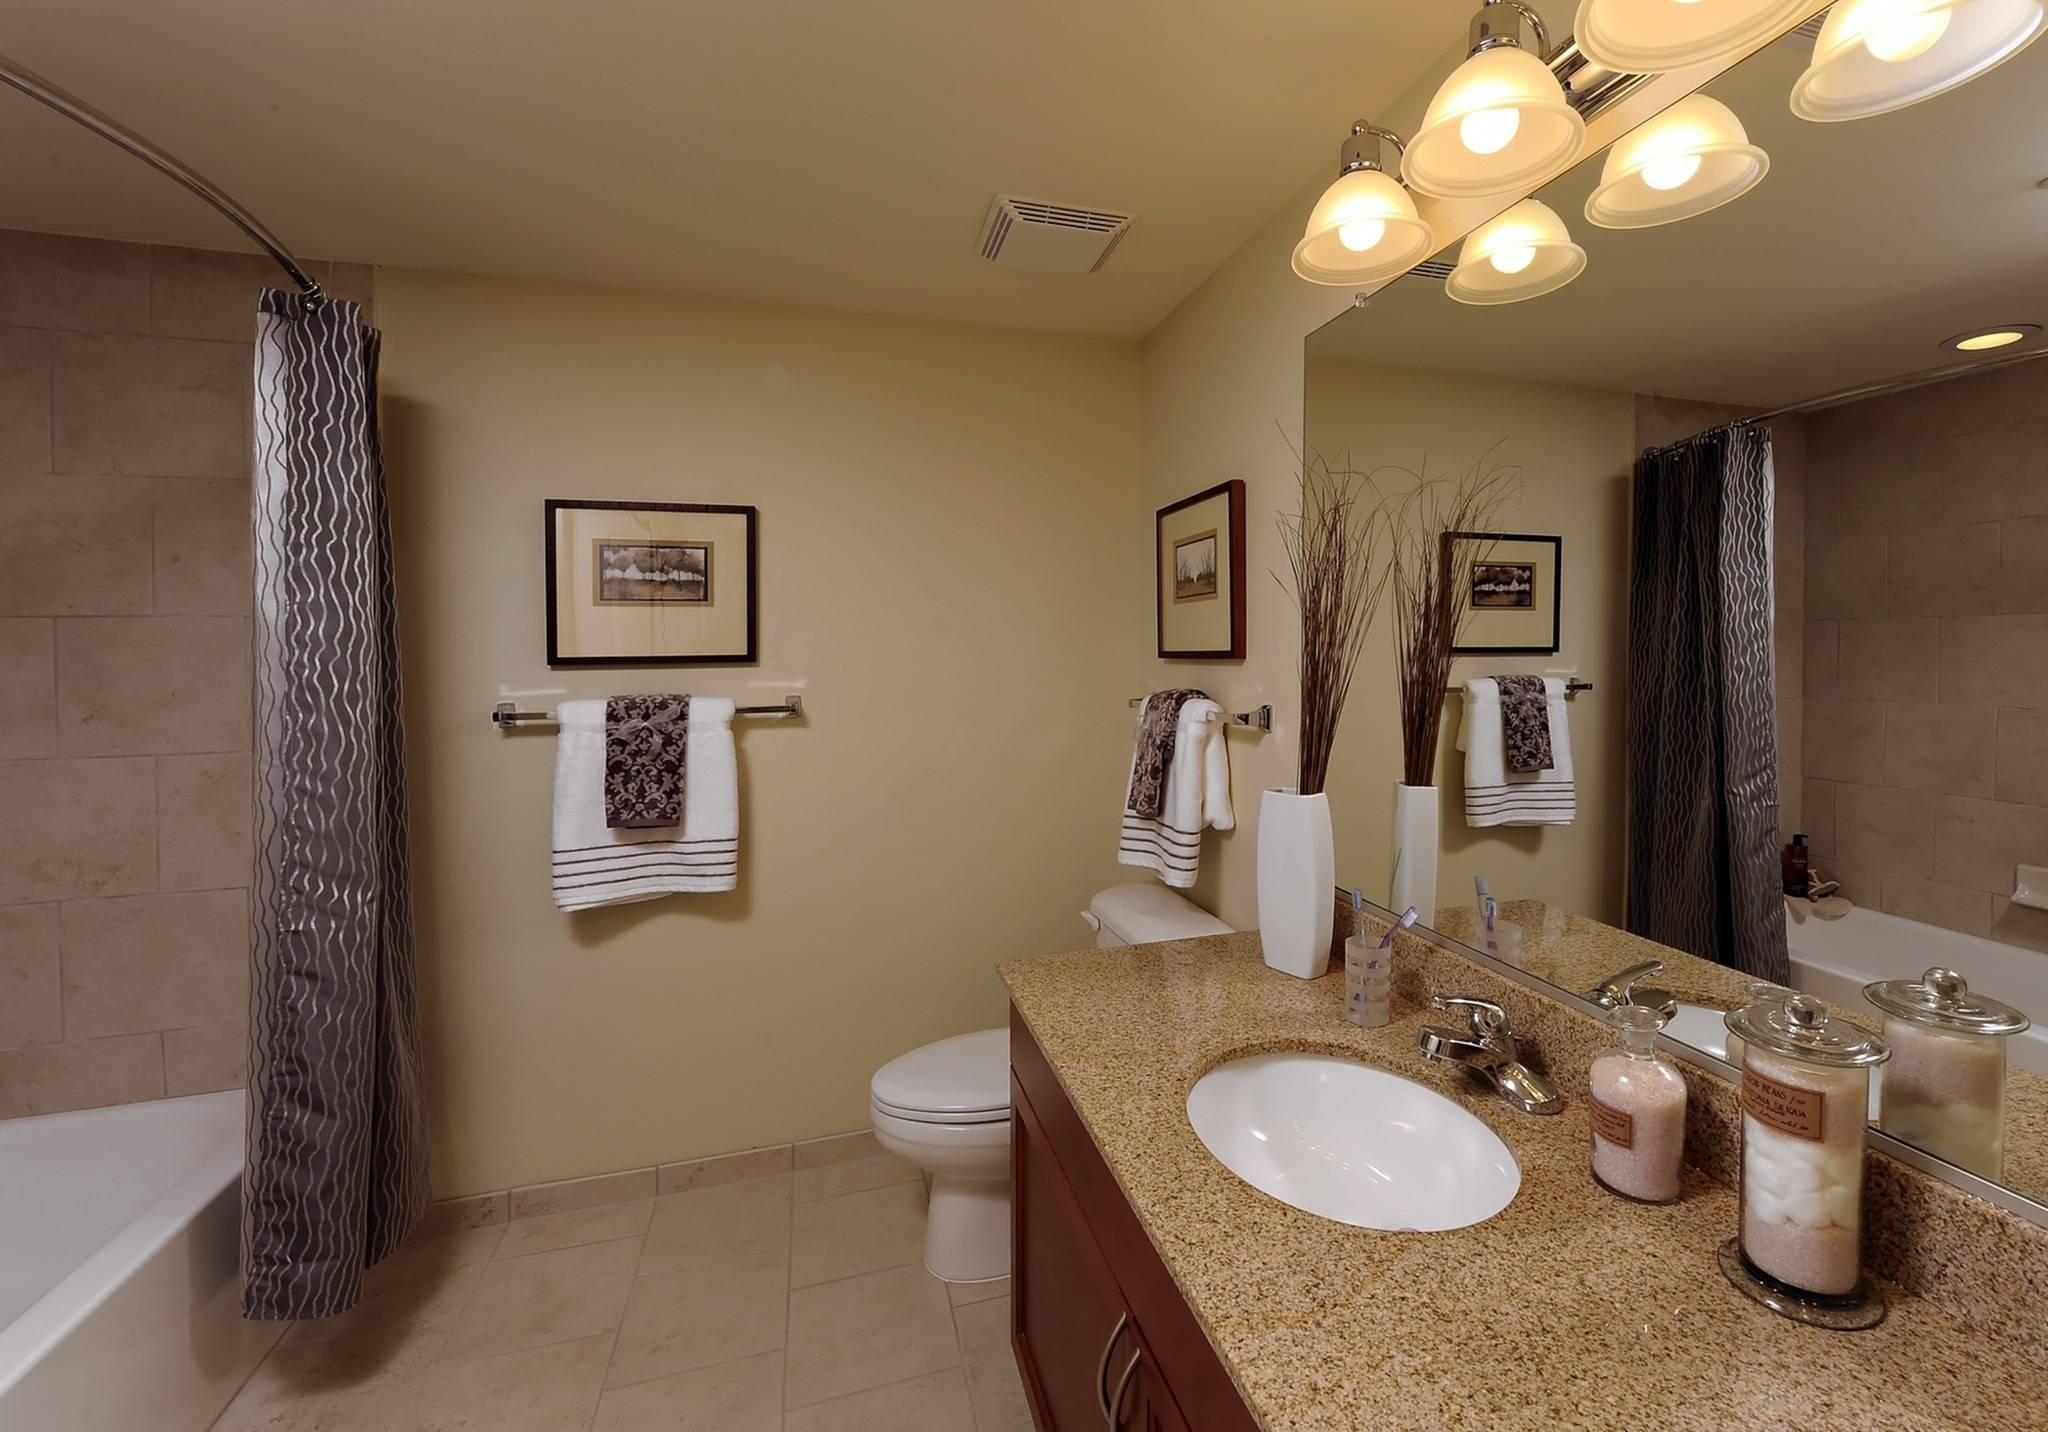 Ceramic Tile and Tub Surrounds in Bathrooms